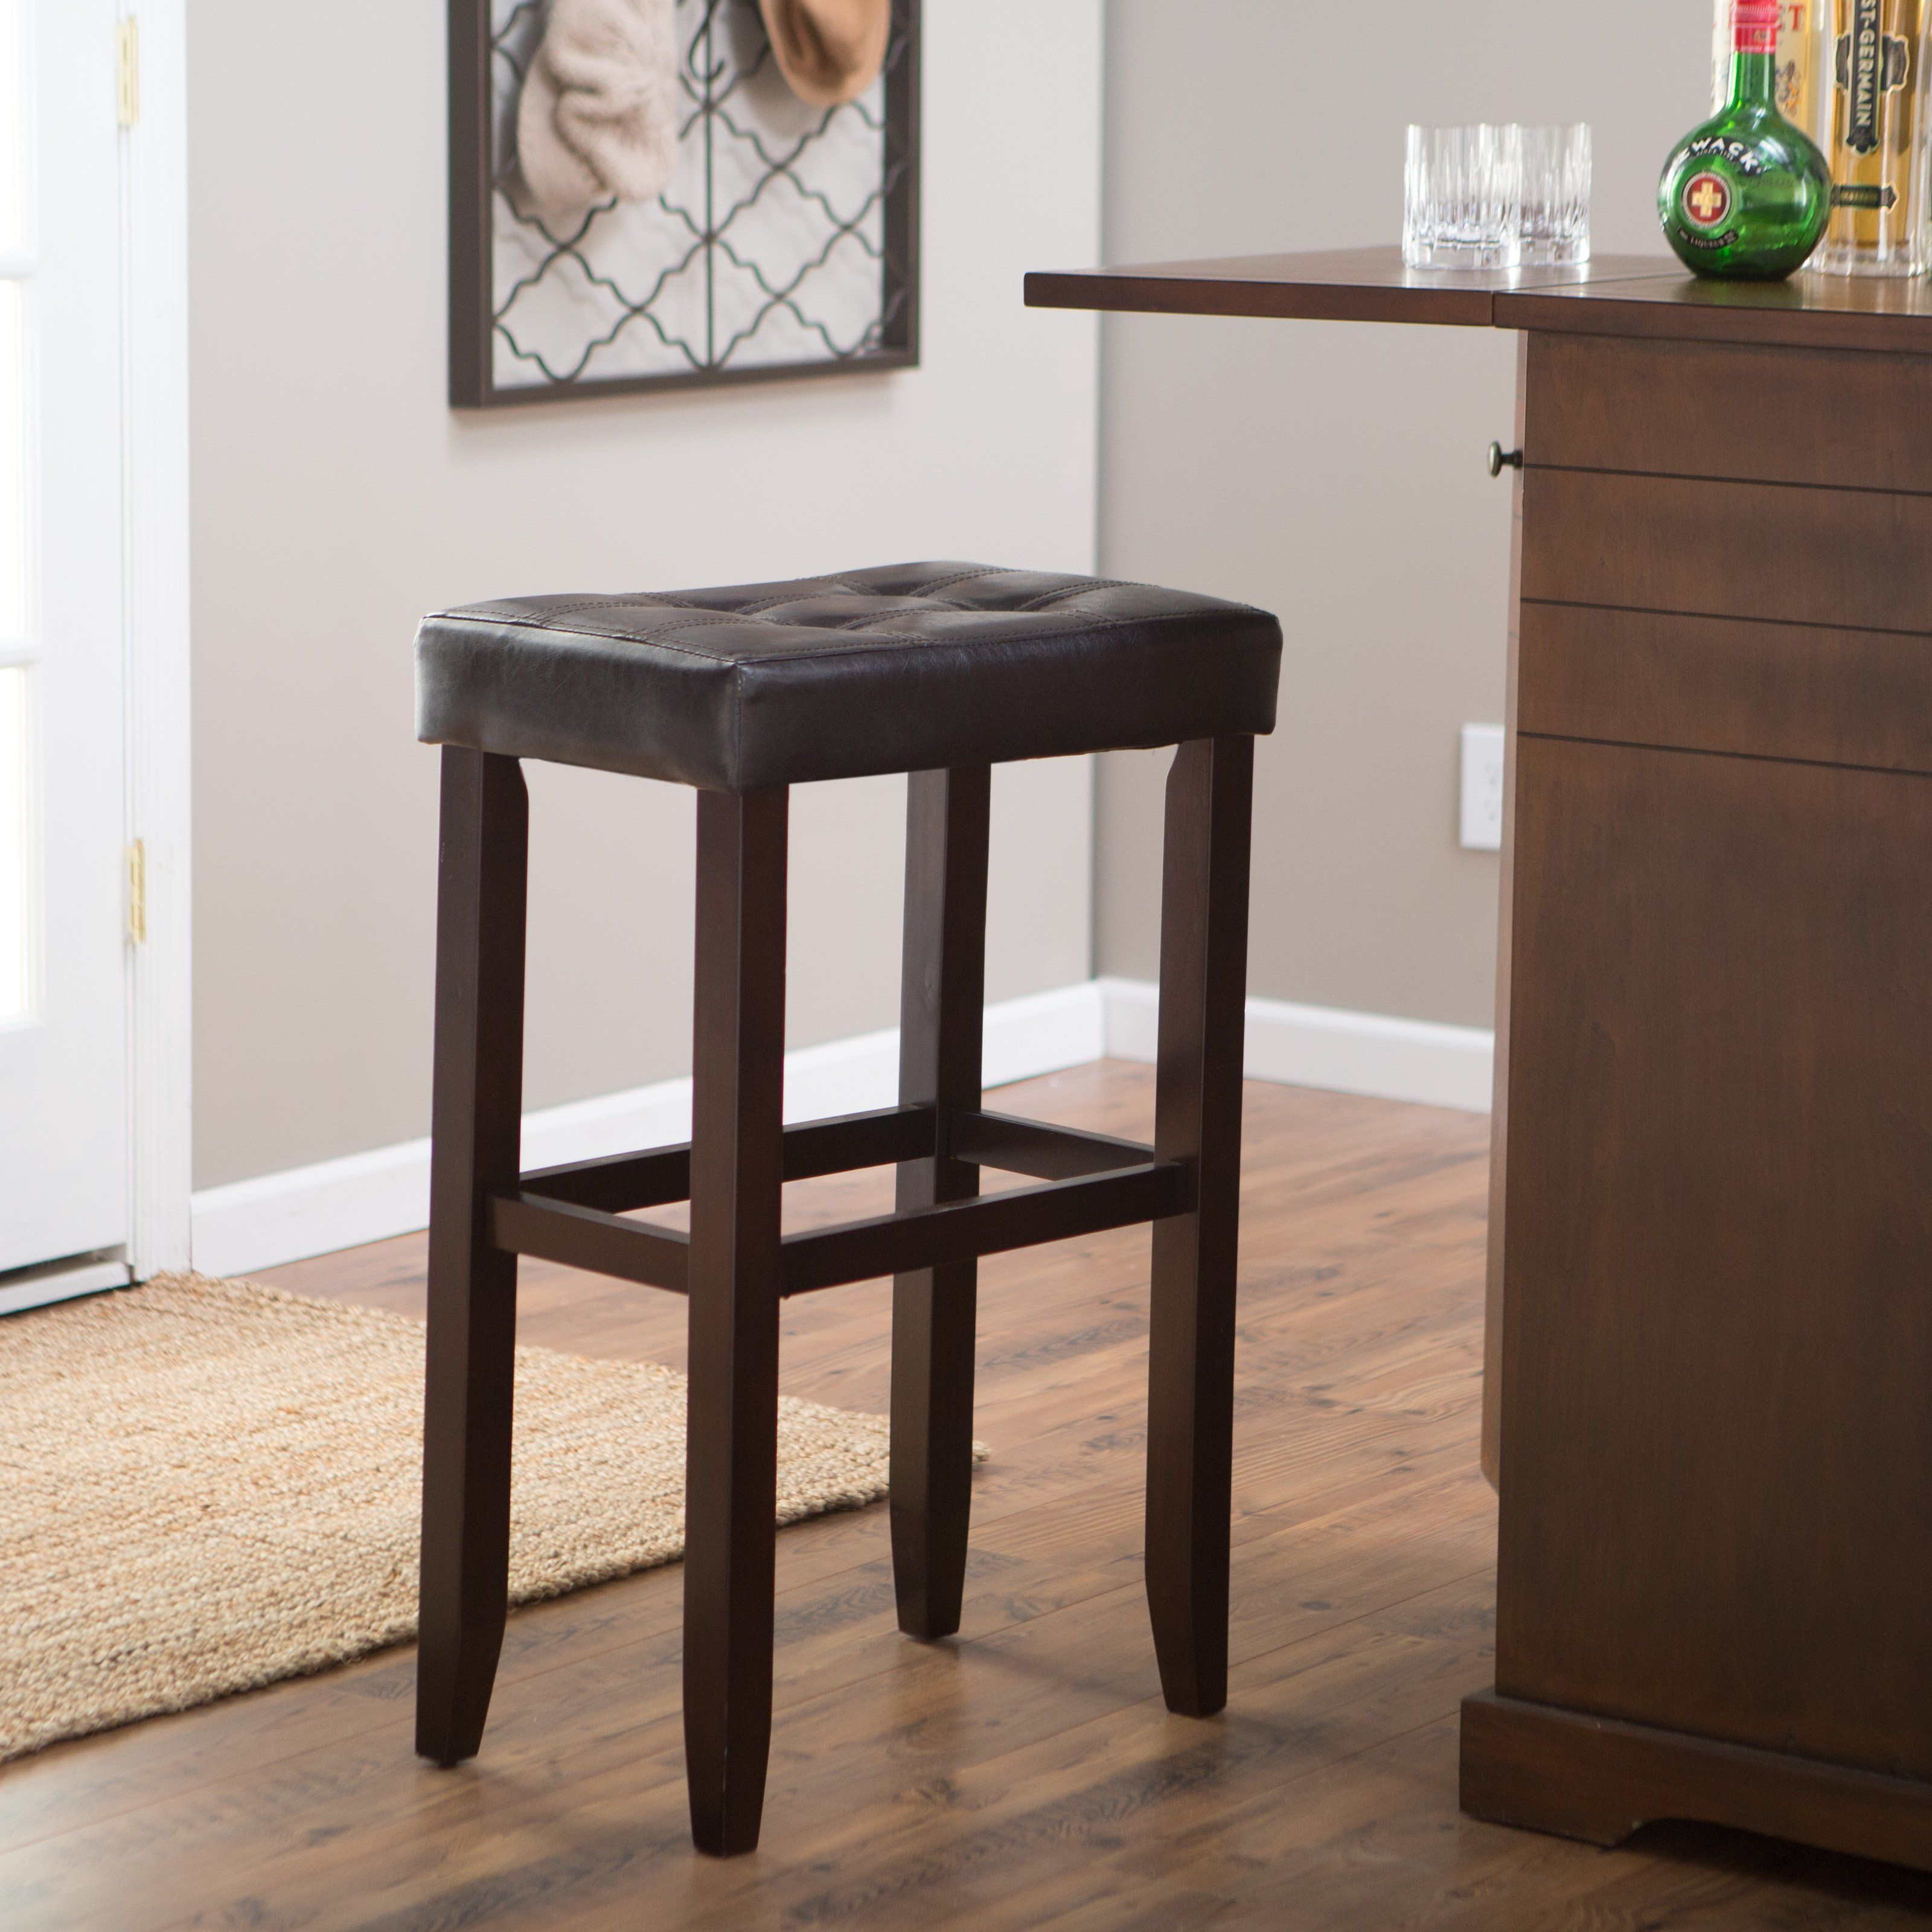 Tall Backless Bar Stools In 2020 Barhocker Diy Hausbar